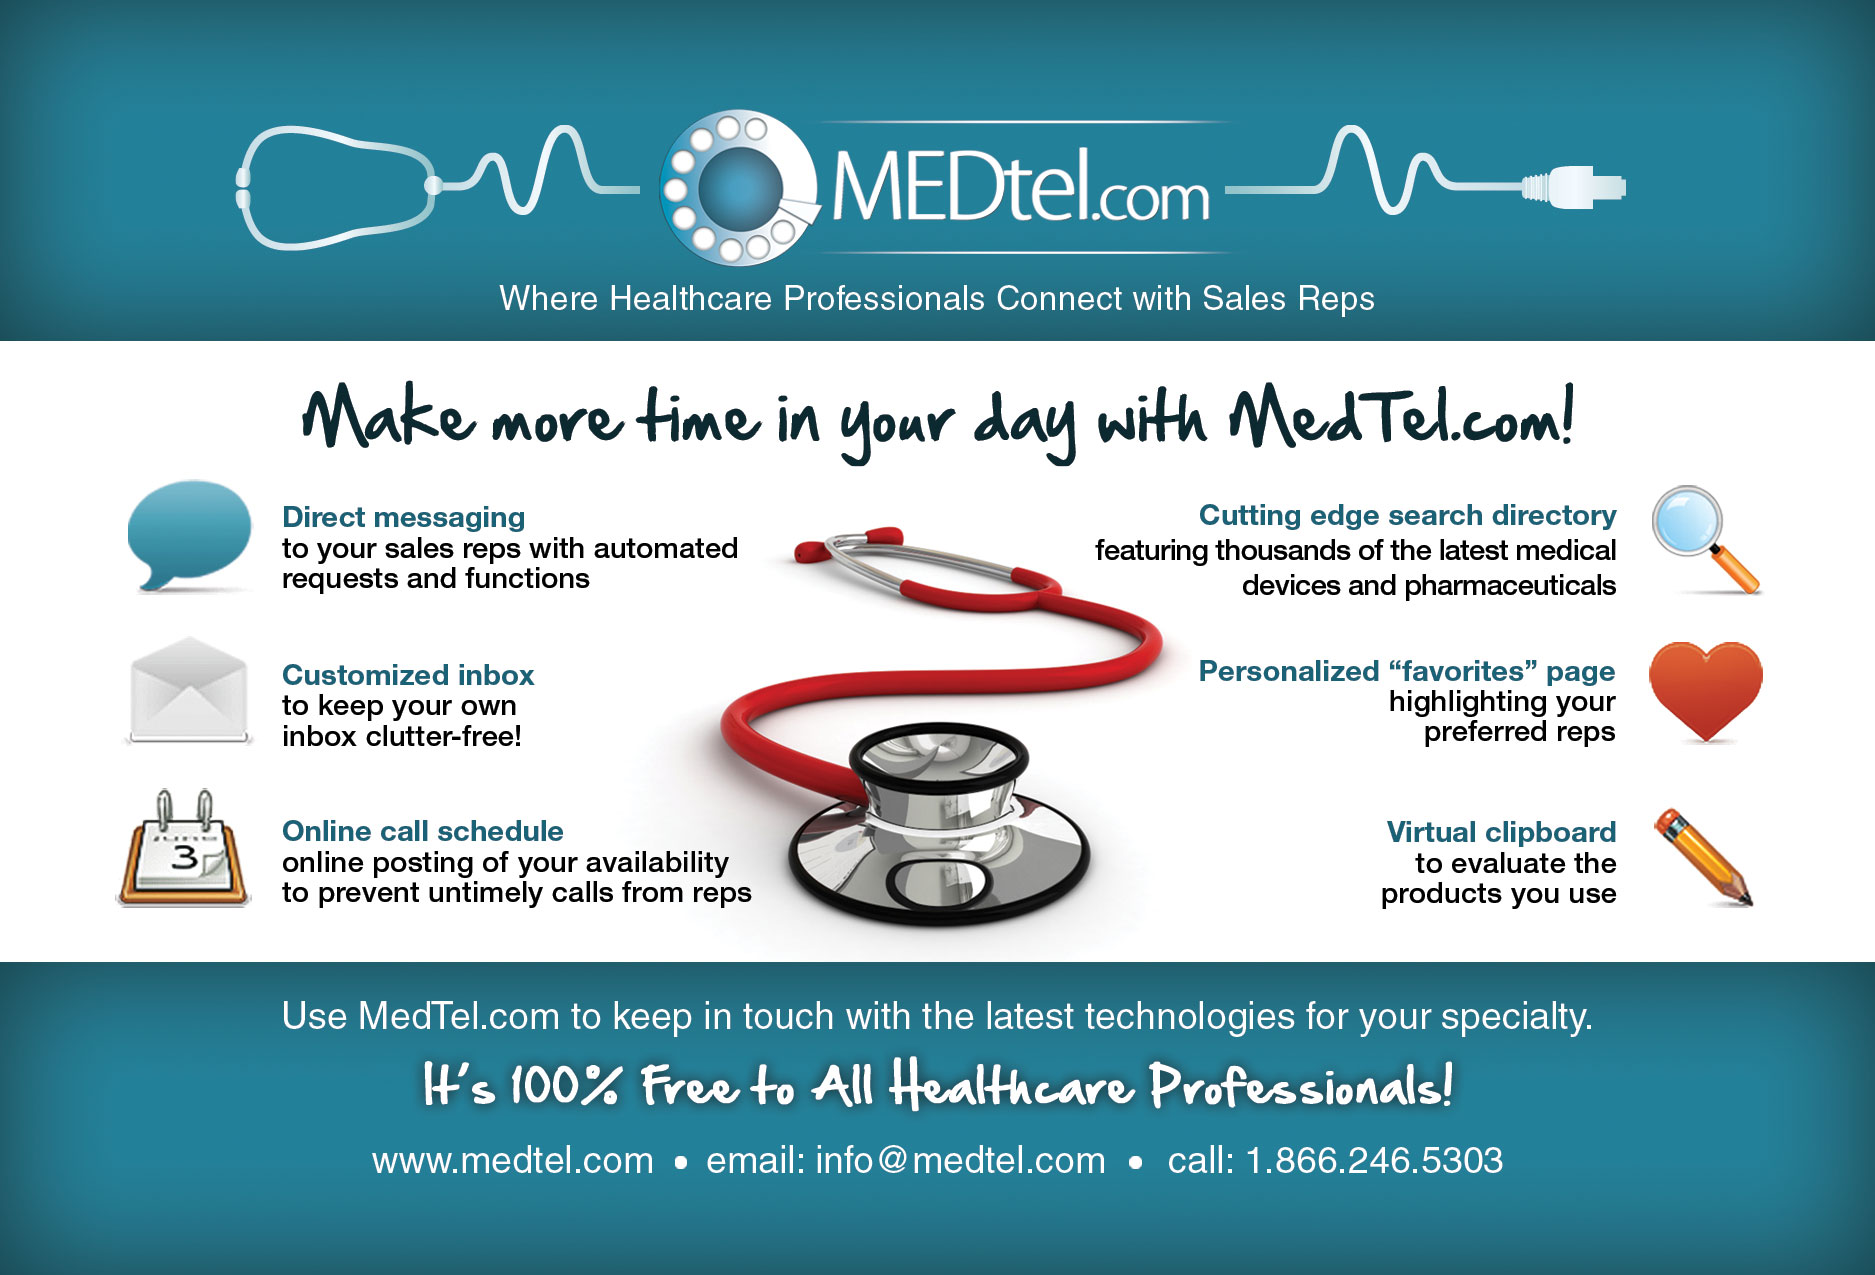 medtel com features direct connect access for doctors enabling medtel com features a pharmaceutical and medical device database integrated a communication platform so that doctors can message reps at their